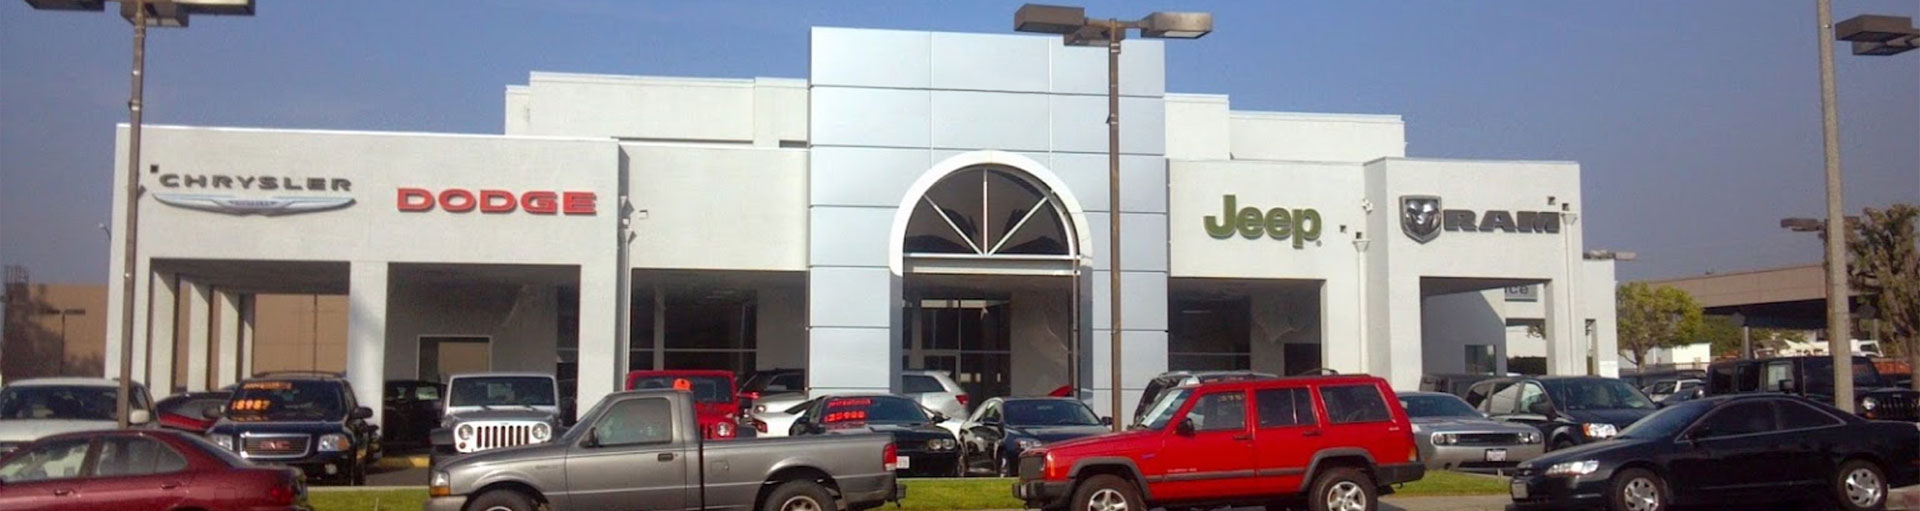 Monrovia Chrysler Dodge Jeep Ram Service Department